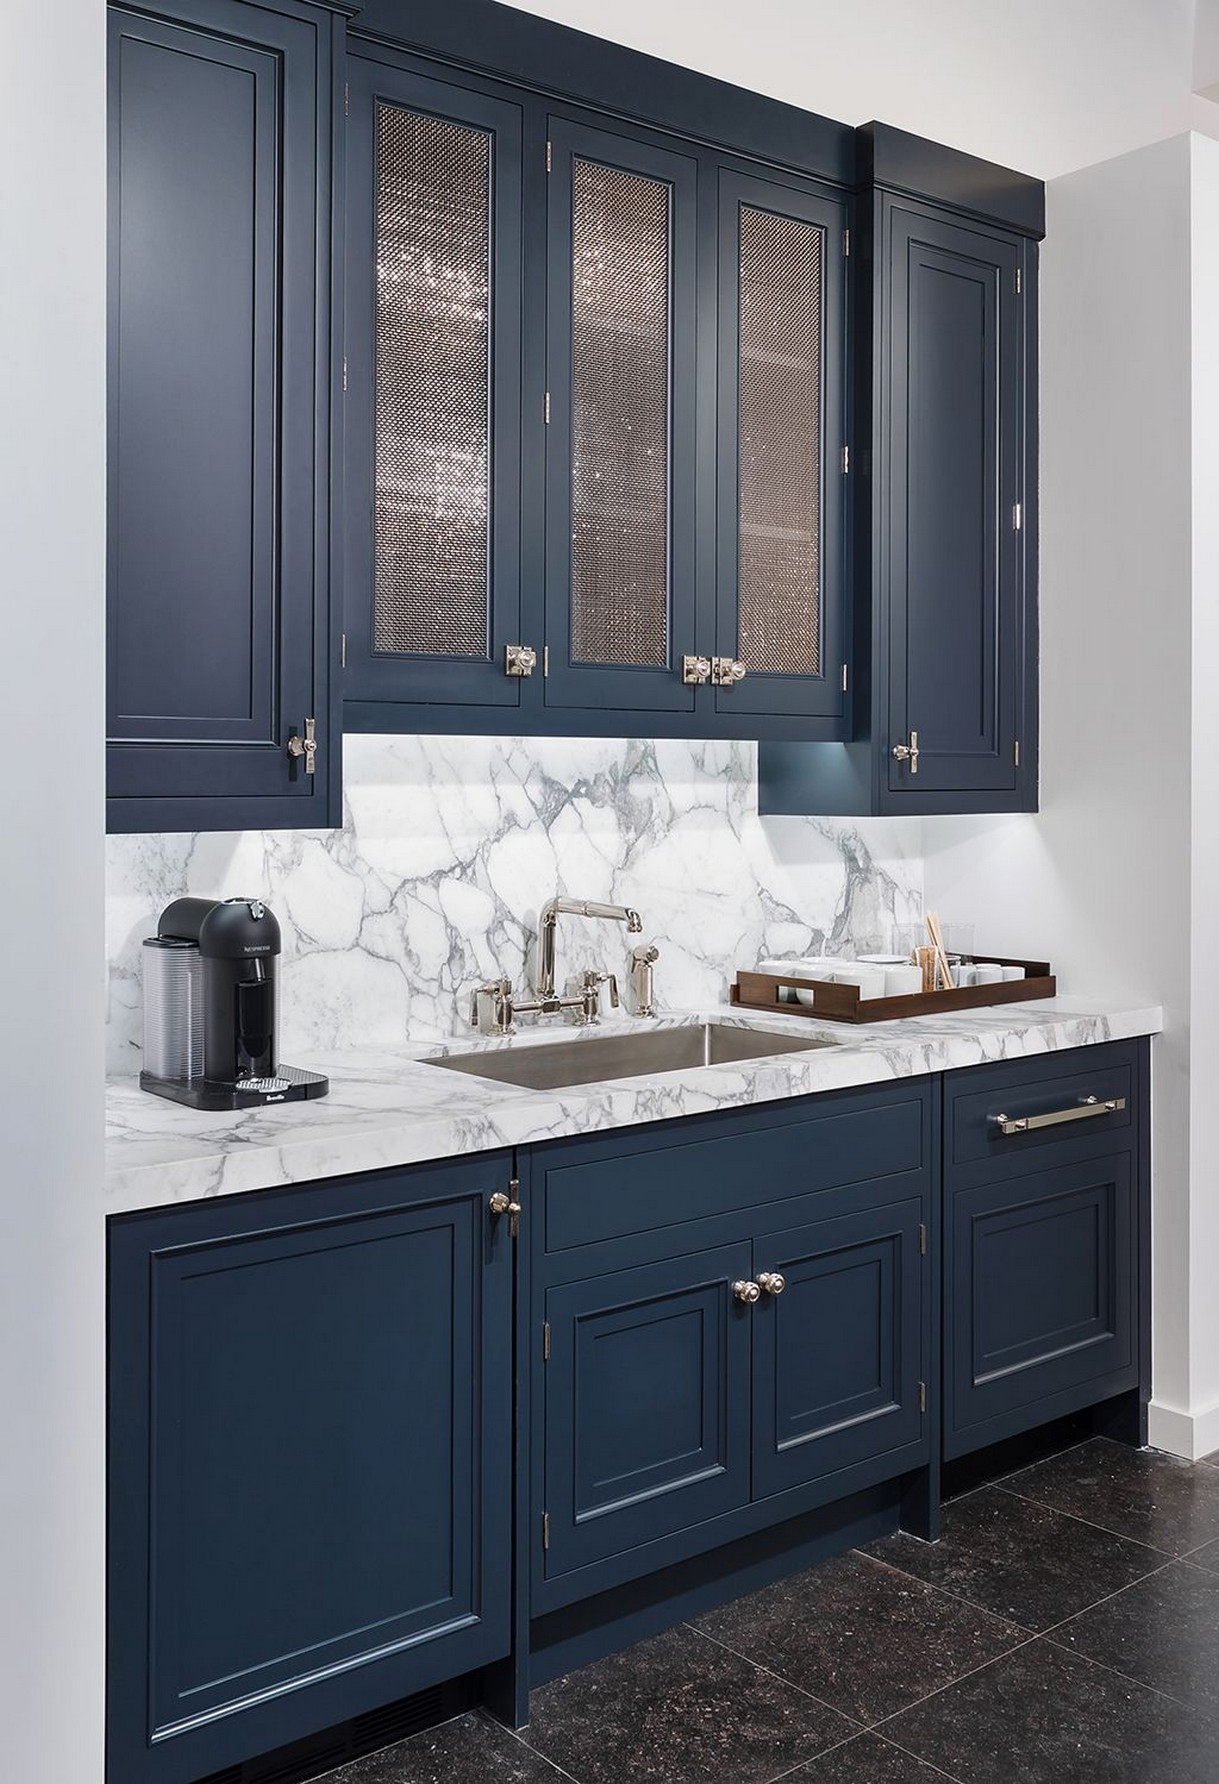 71 Painted Kitchen Cabinets Ideas For Home Decor 49